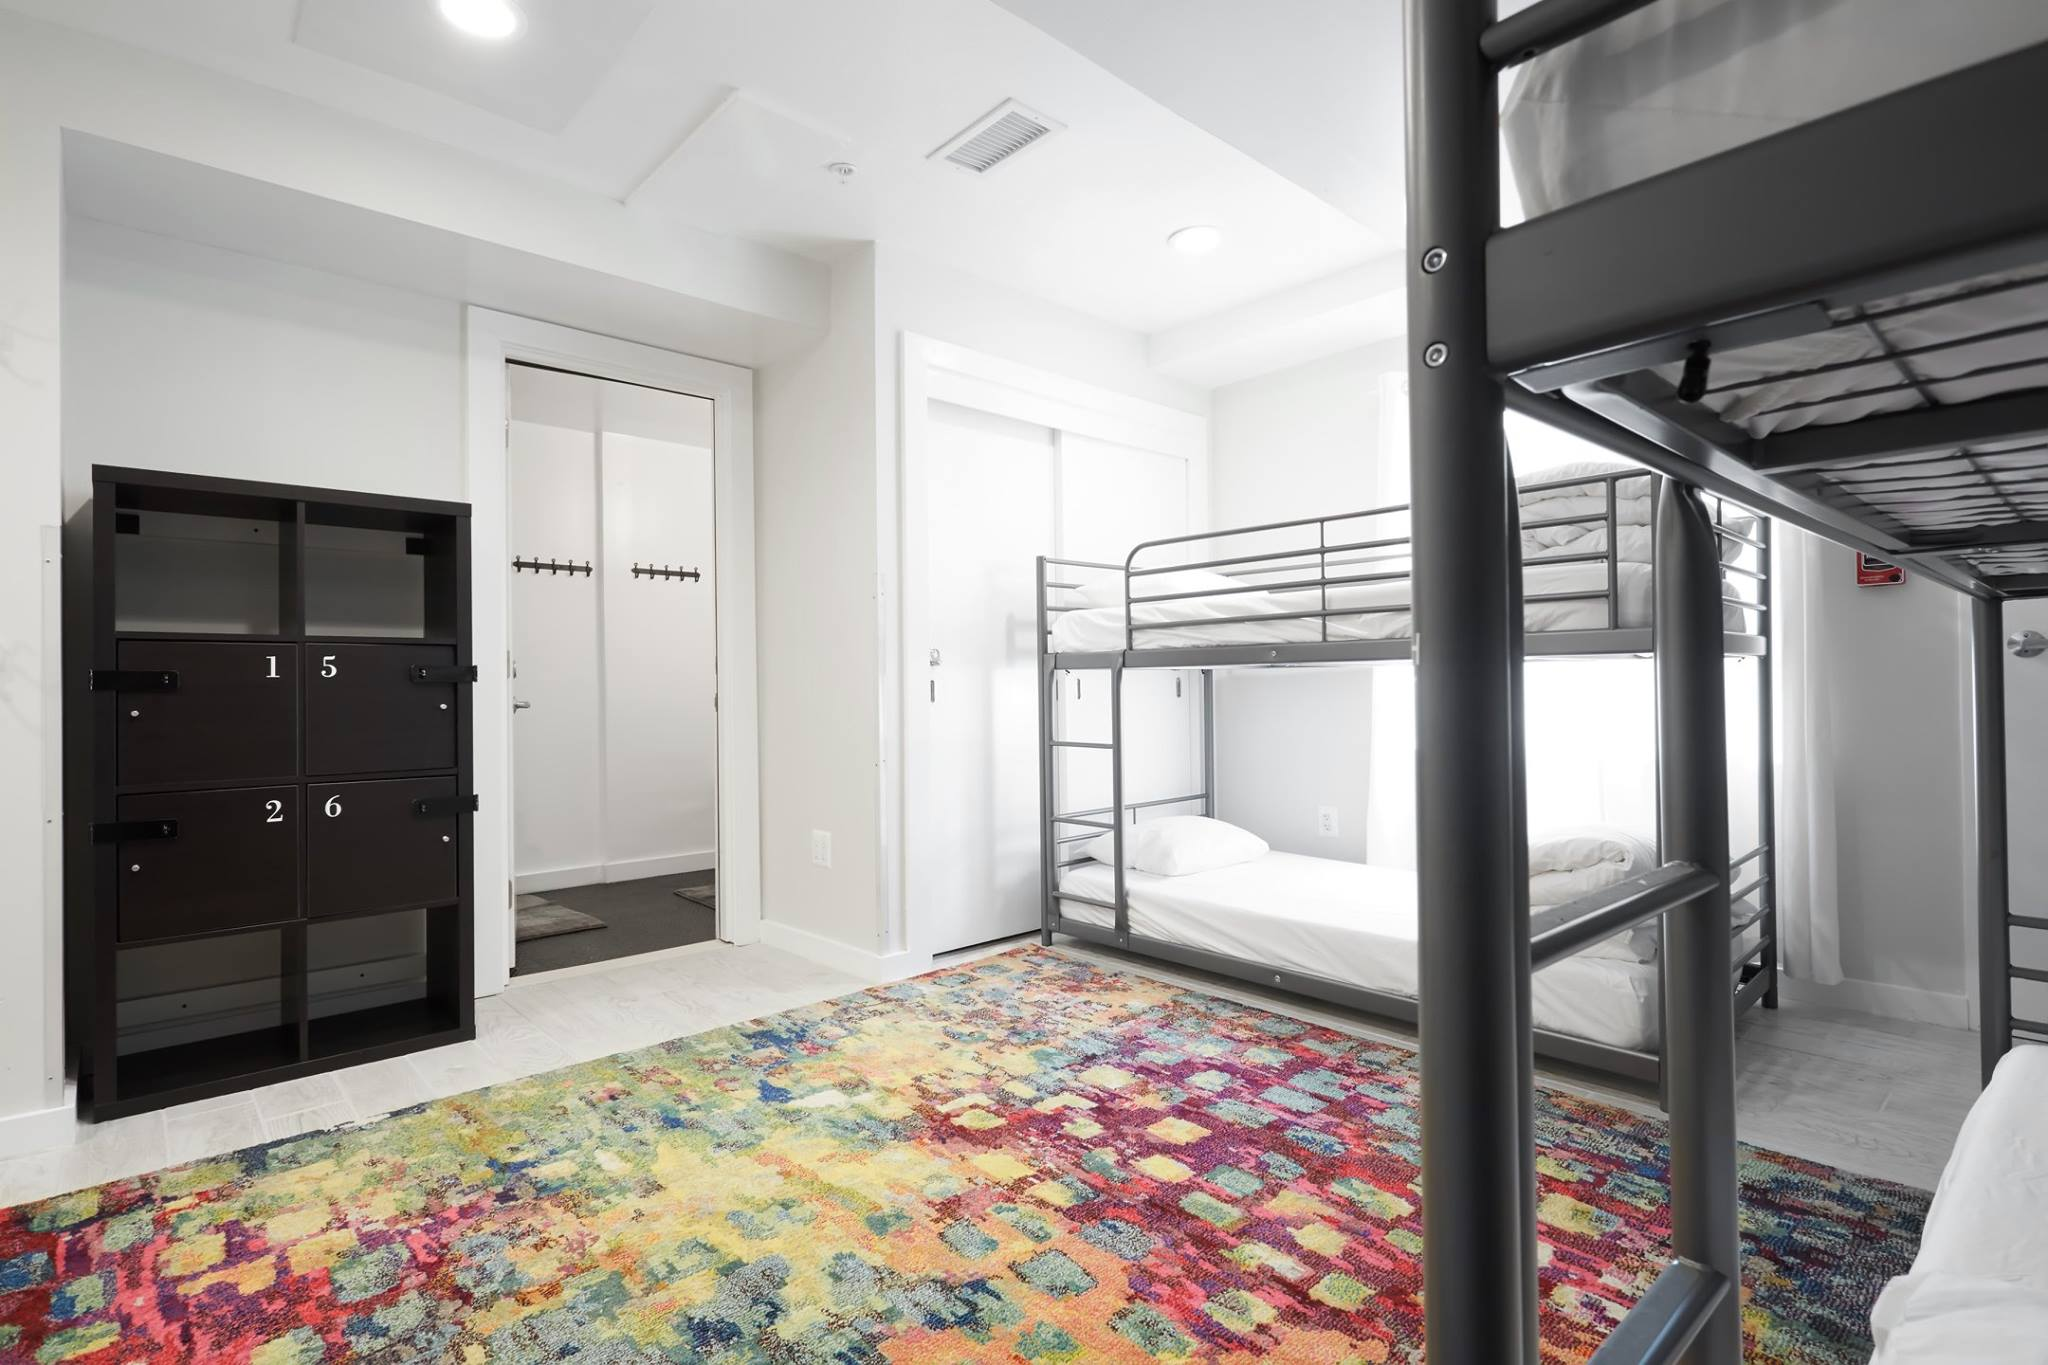 Bunk beds, guest lockers, arranged in a bright shared room